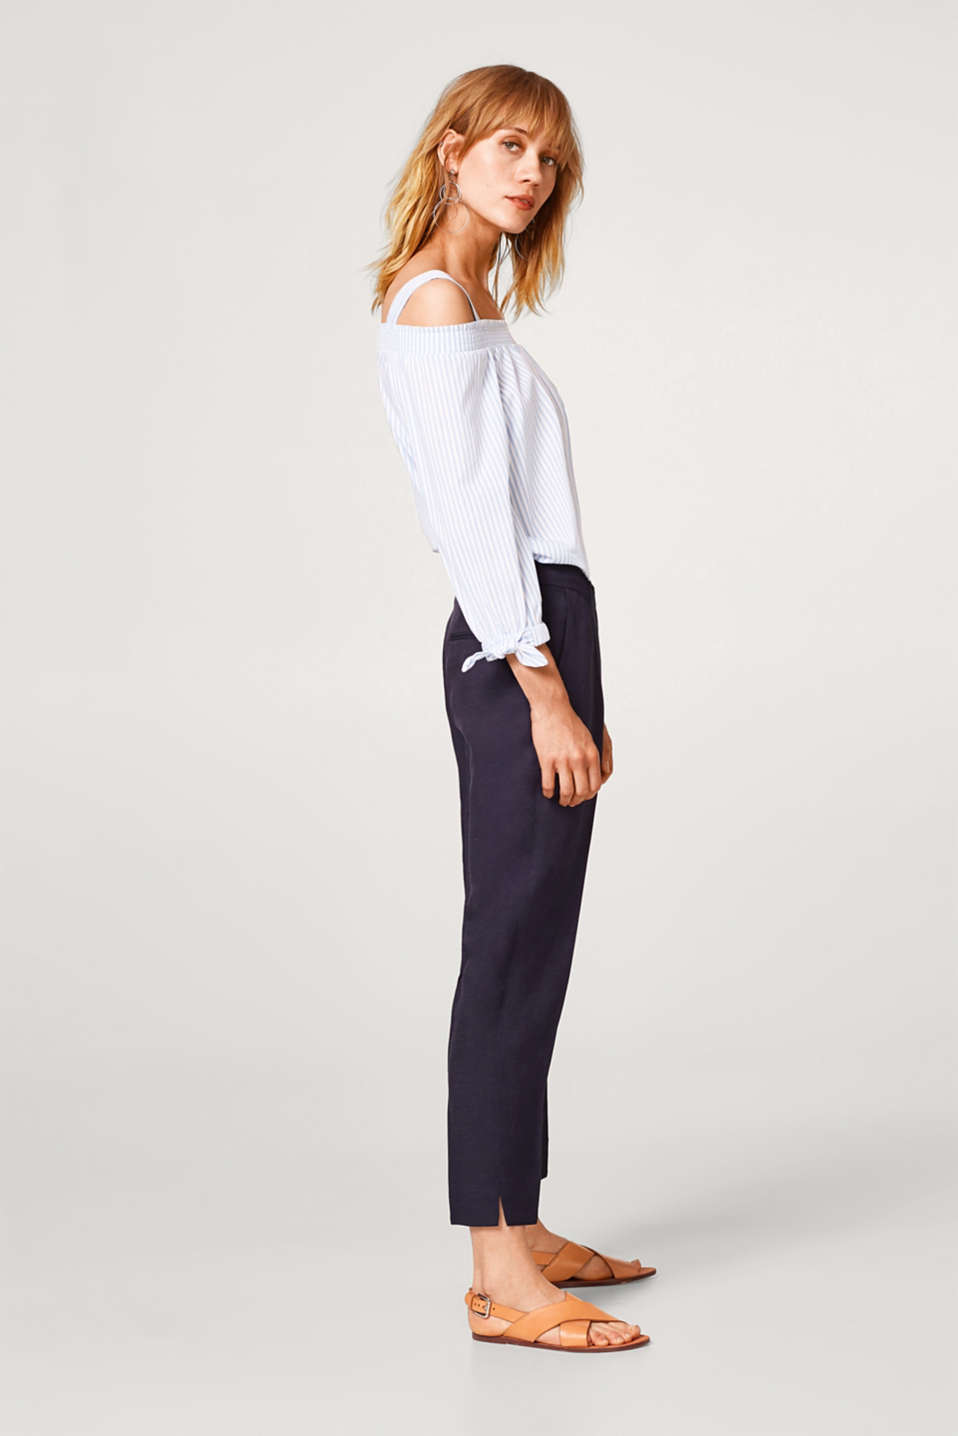 FEMININE STYLE mix + match trousers with a frilled trim